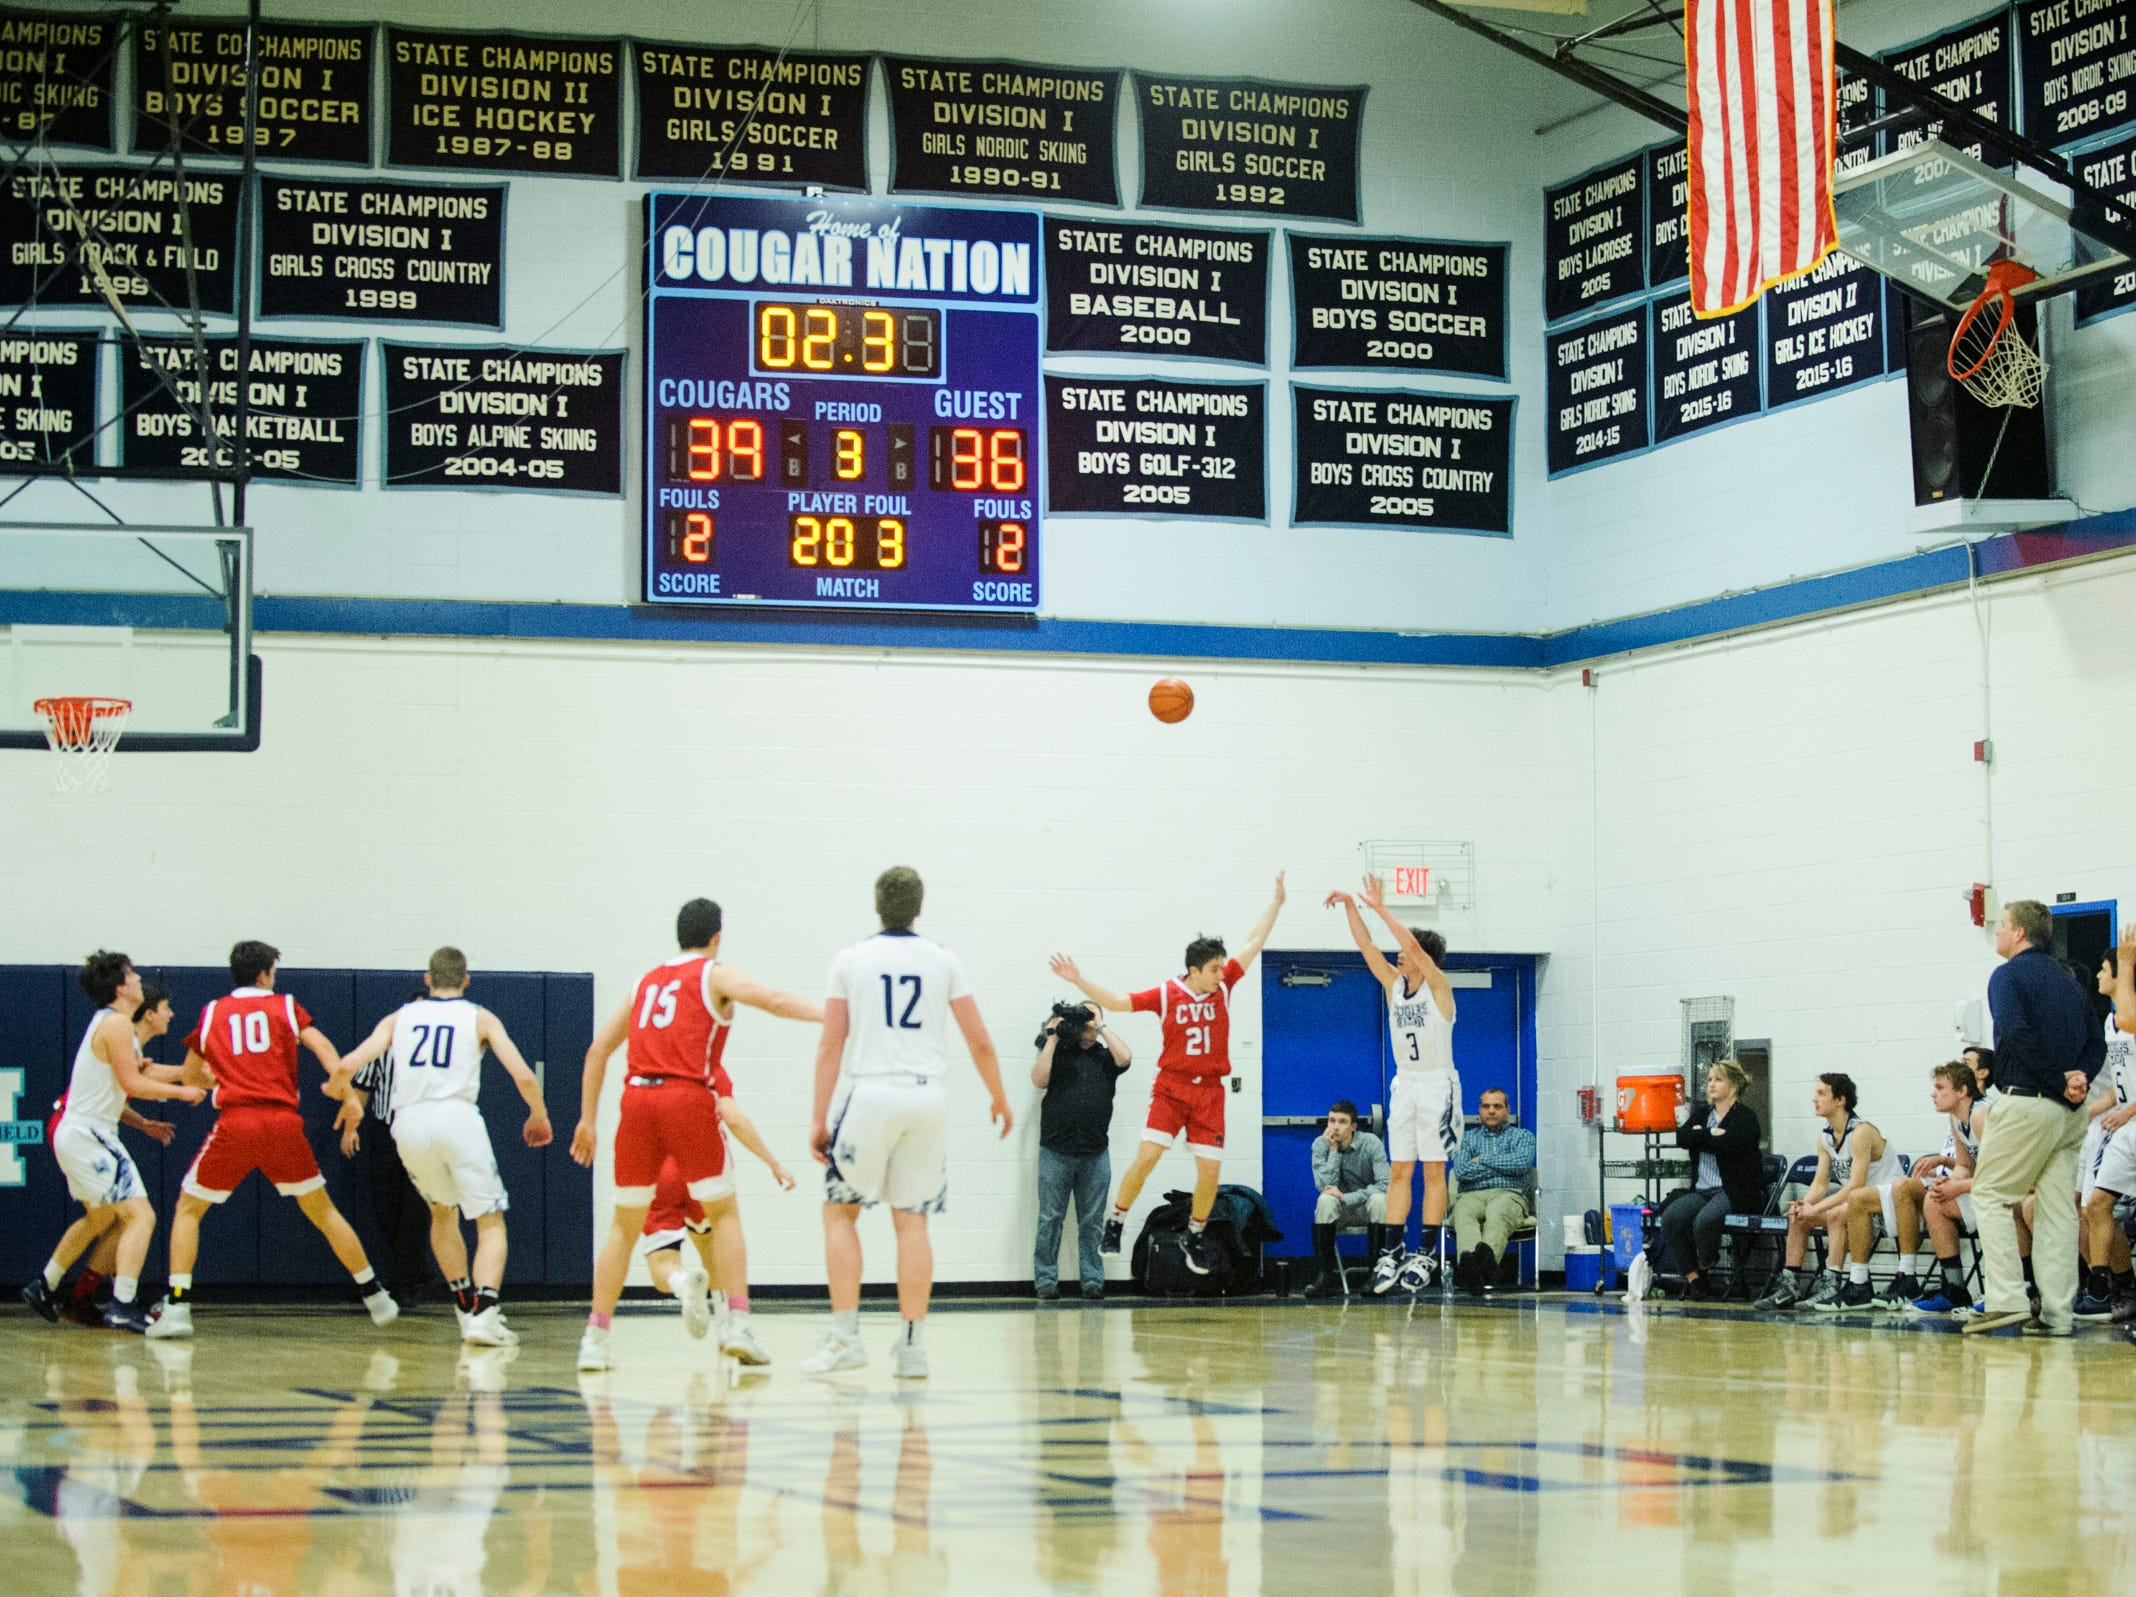 MMU's Justin Morse (3) shoots a three pointer over CVU's Nikos Carroll (21) during the boys basketball game between the Champlain Valley Union Redhawks and the Mount Mansfield Cougars at MMU High School on Tuesday night January 22, 2019 in Jericho.